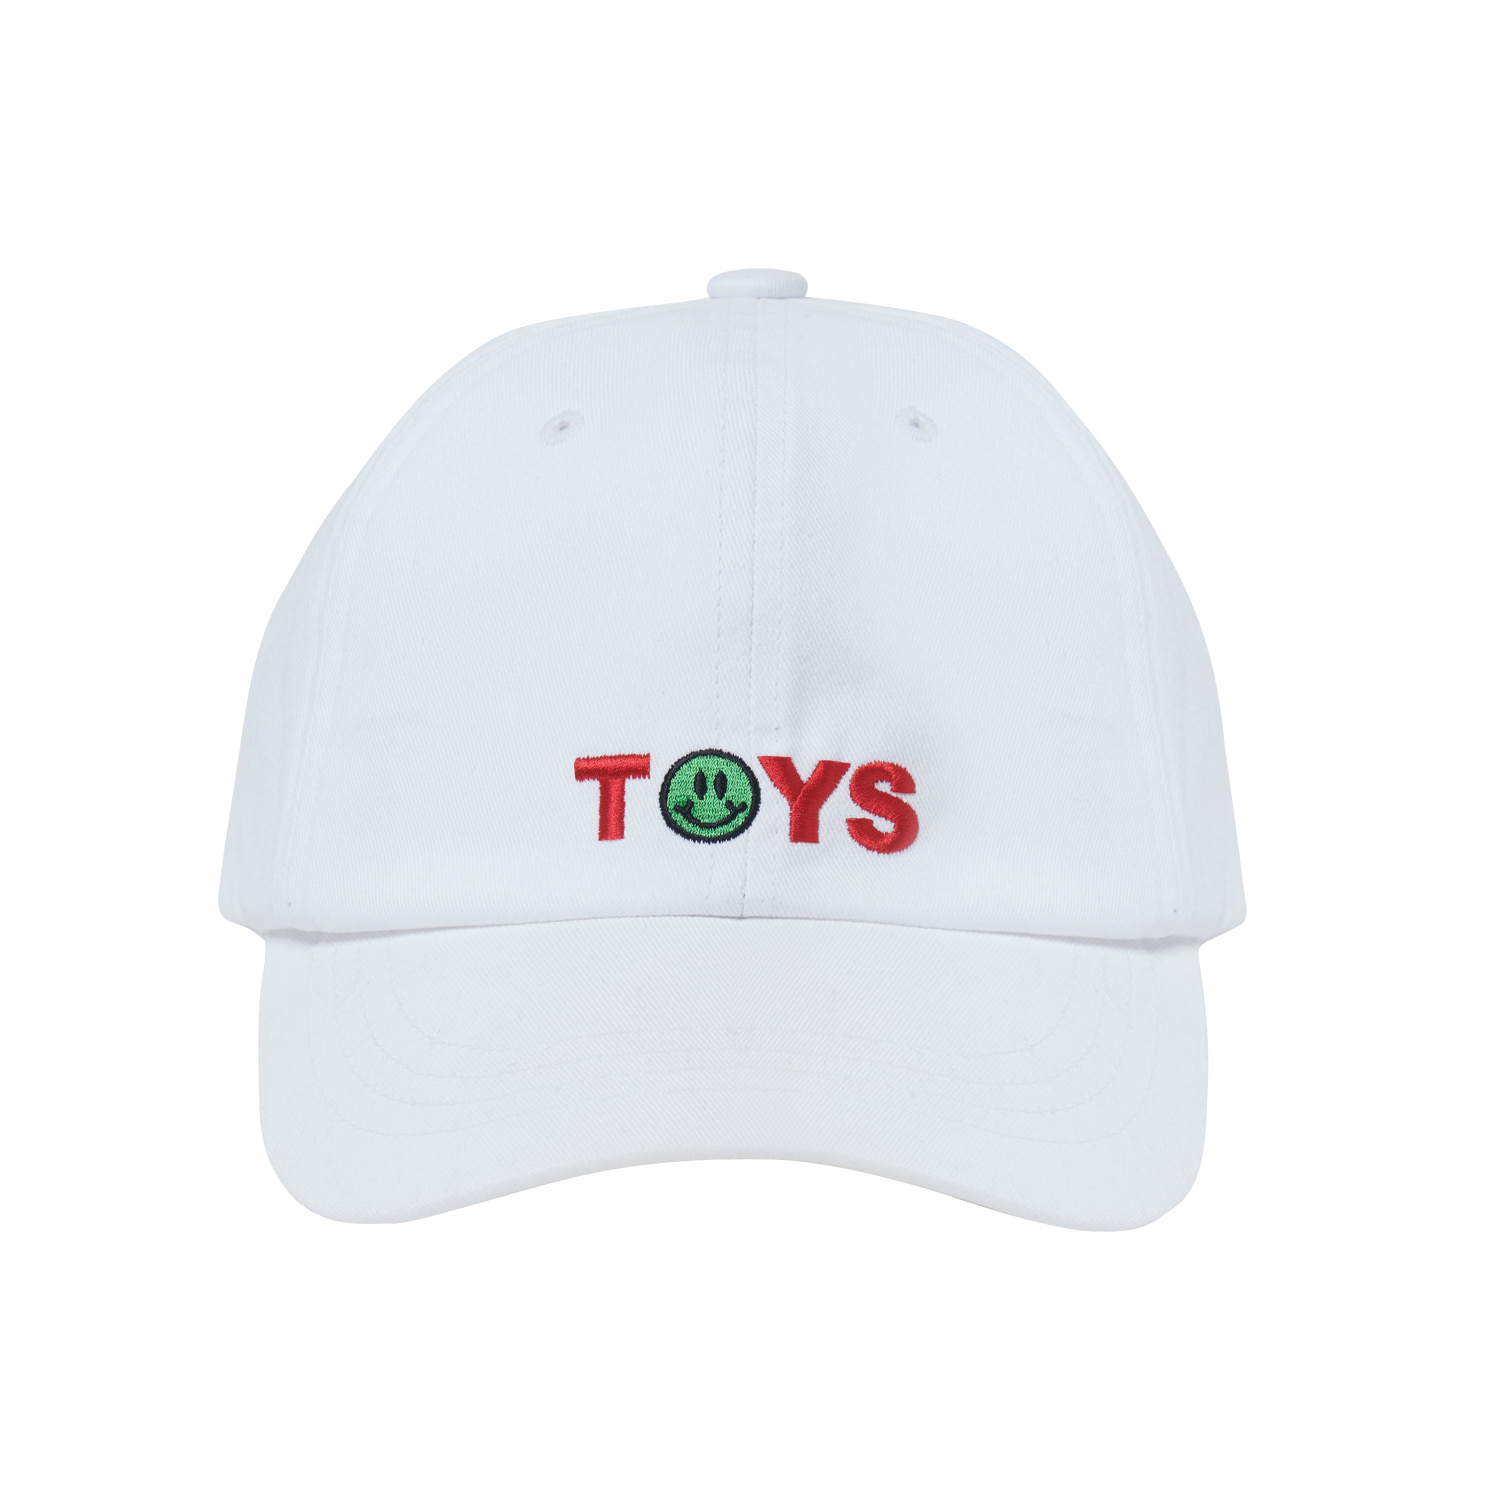 [75% OFF]TOYS BALL CAP(WHITE)